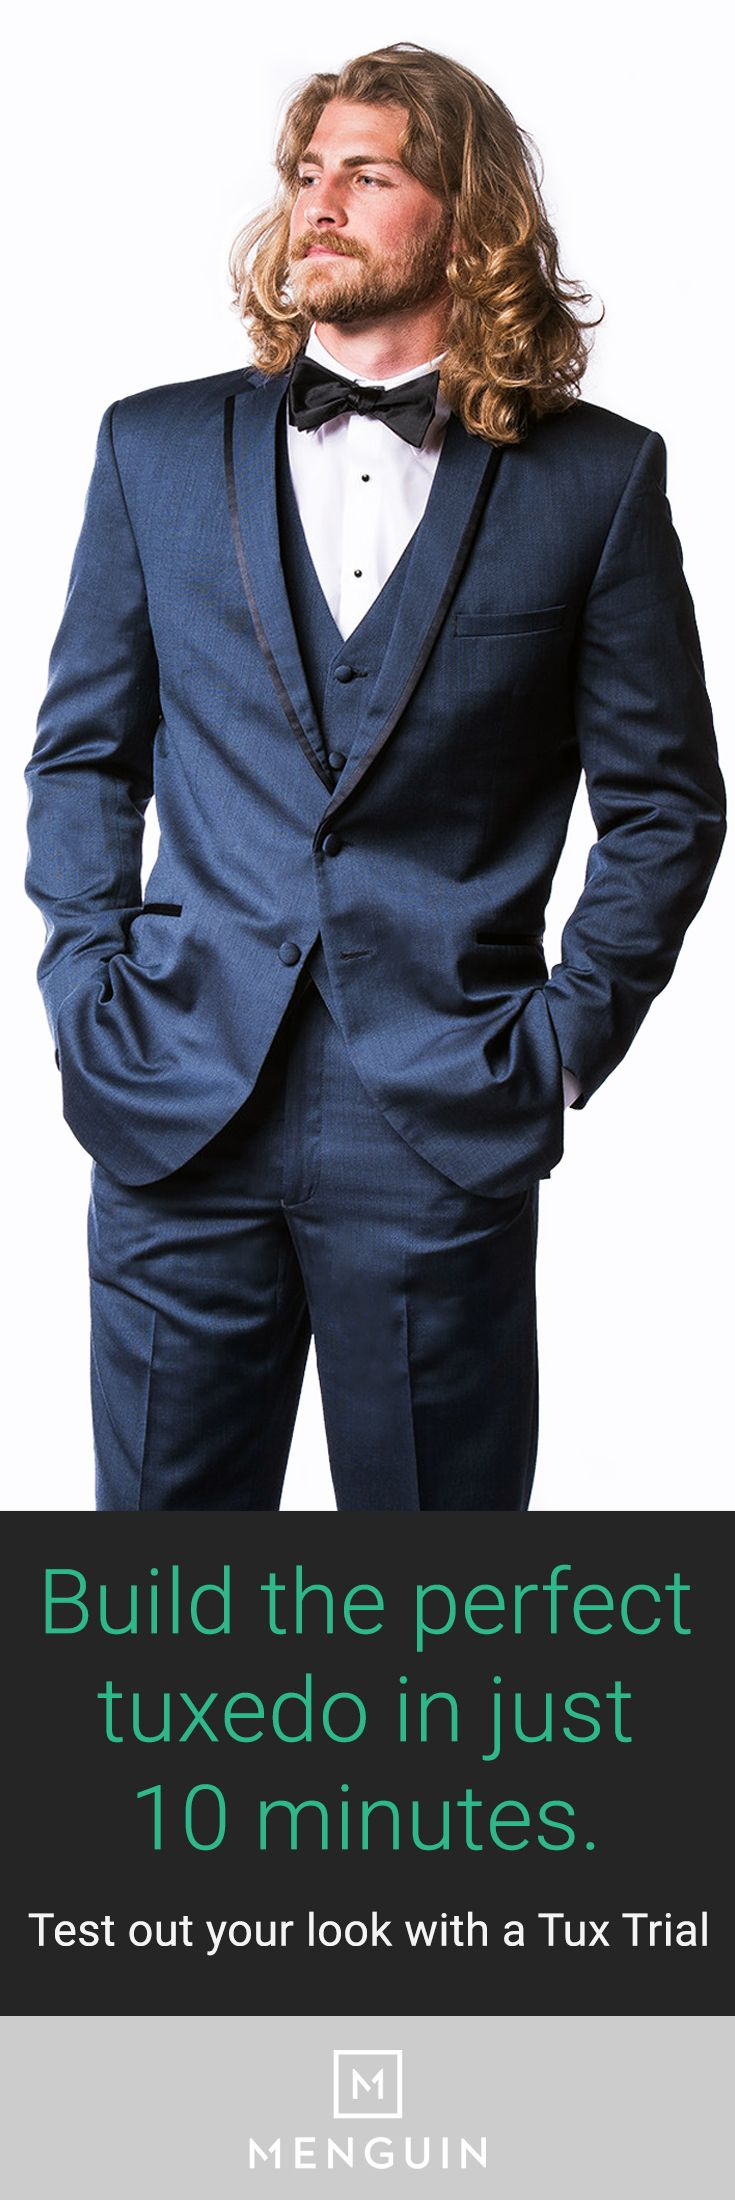 25 best ideas about cute guys on pinterest cute baby for Tux builder